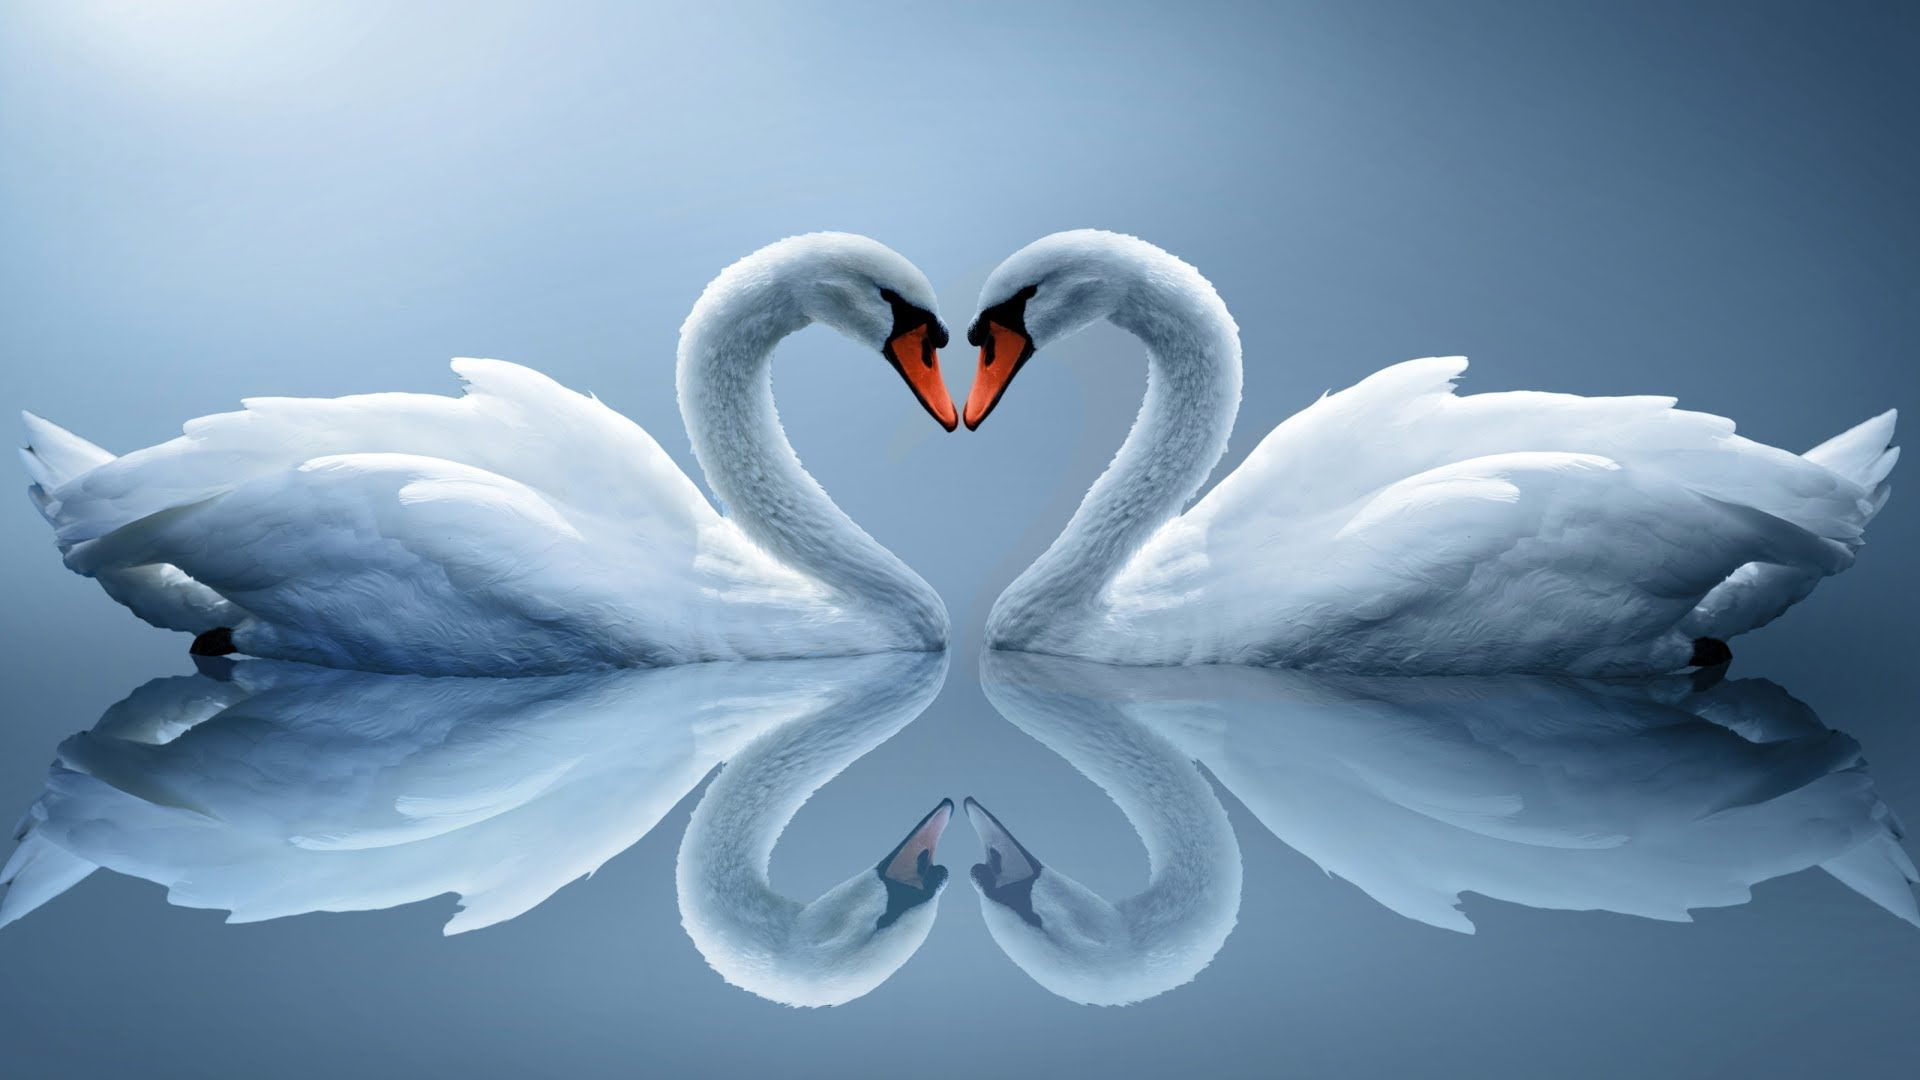 Image Of Love wallpaper for pc